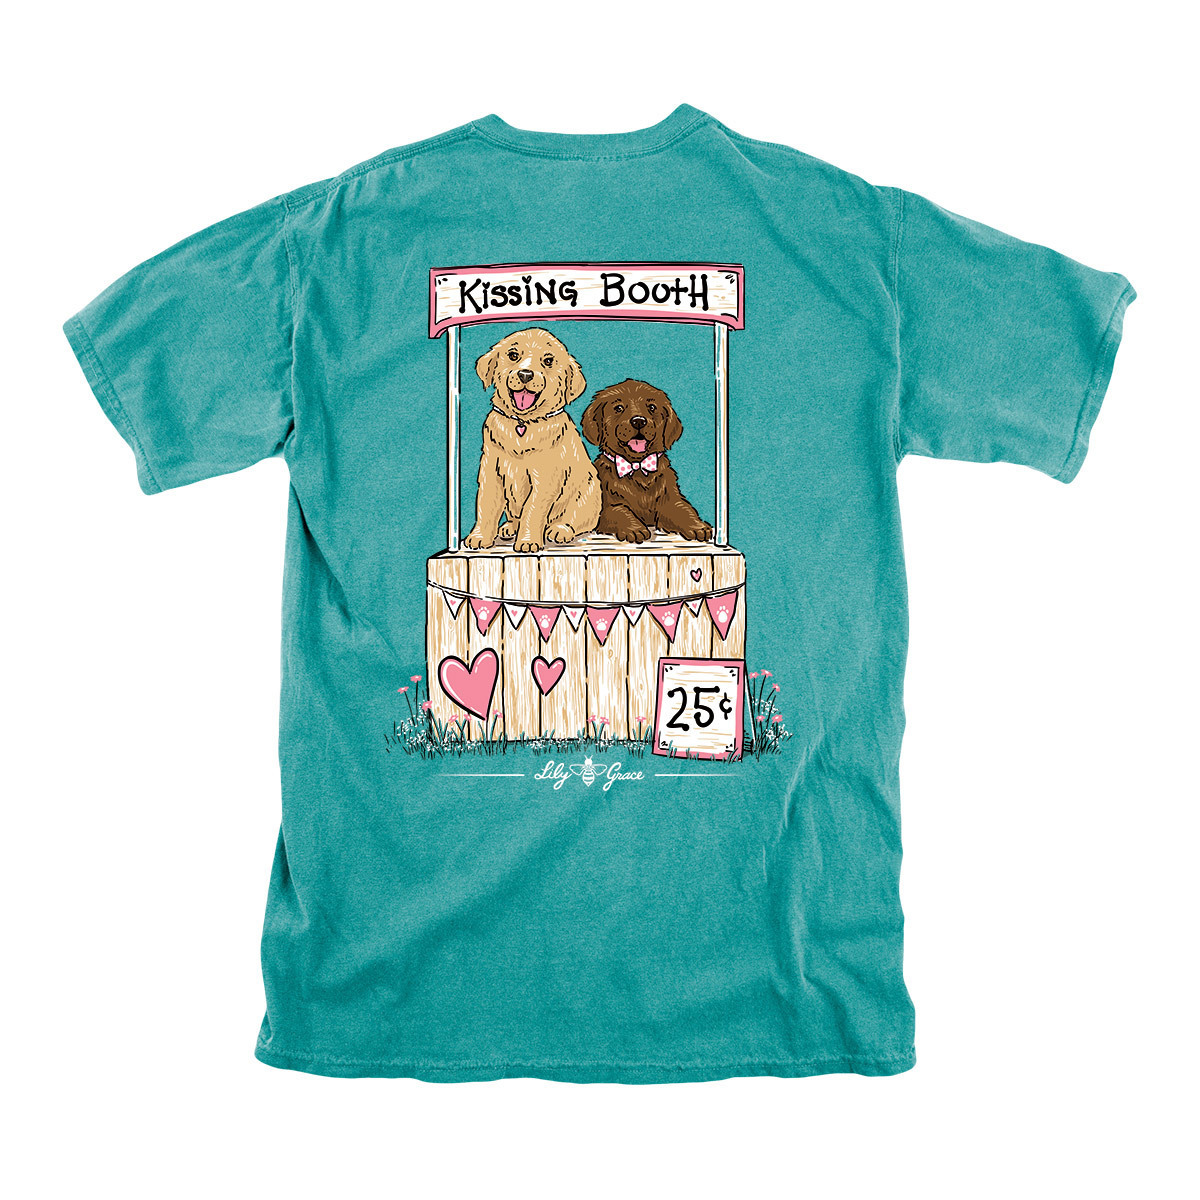 Lily Grace Kissing Booth T-Shirt